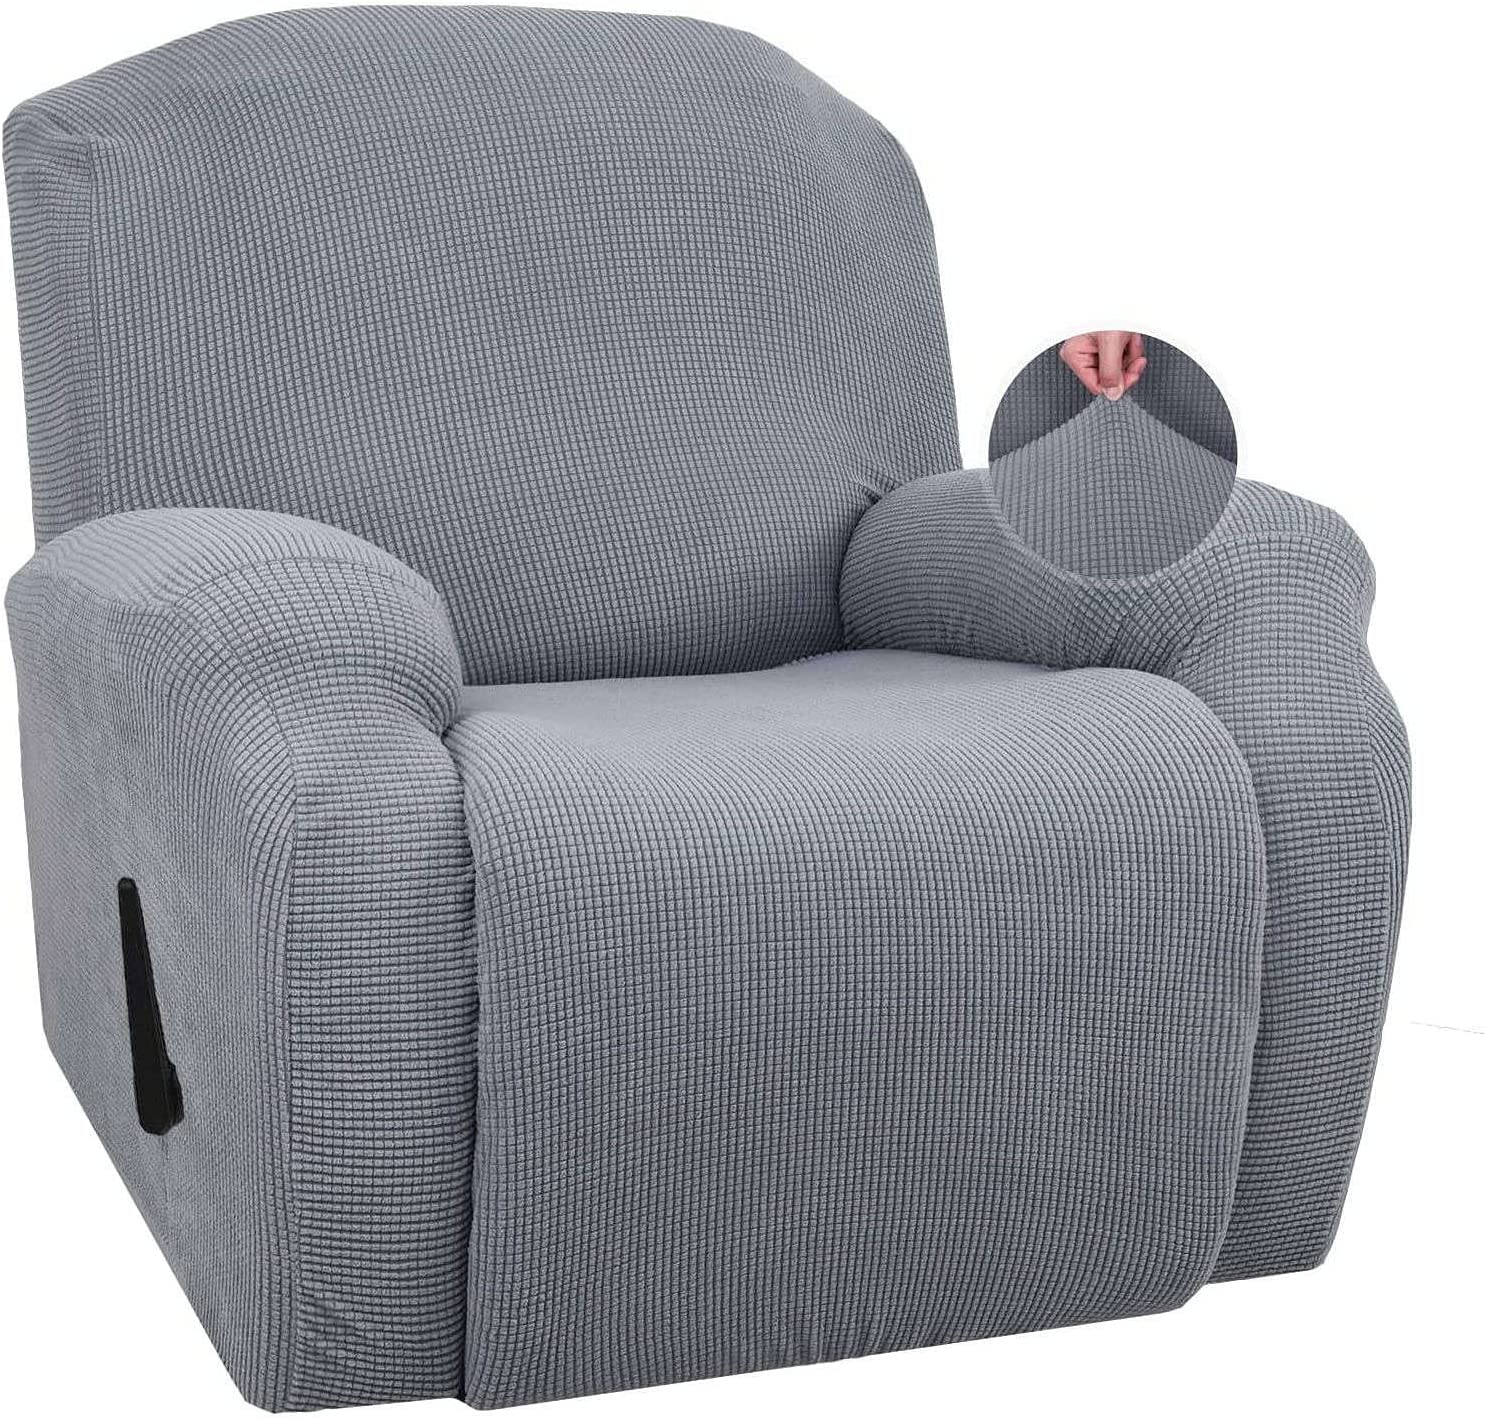 Stretch Recliner Slipcover Sofa Slipcover, Single Seat Leisure Jacquard Armchair Covers Recliner Chair Cover Furniture Protector for Recliner Armchair-Light Gray